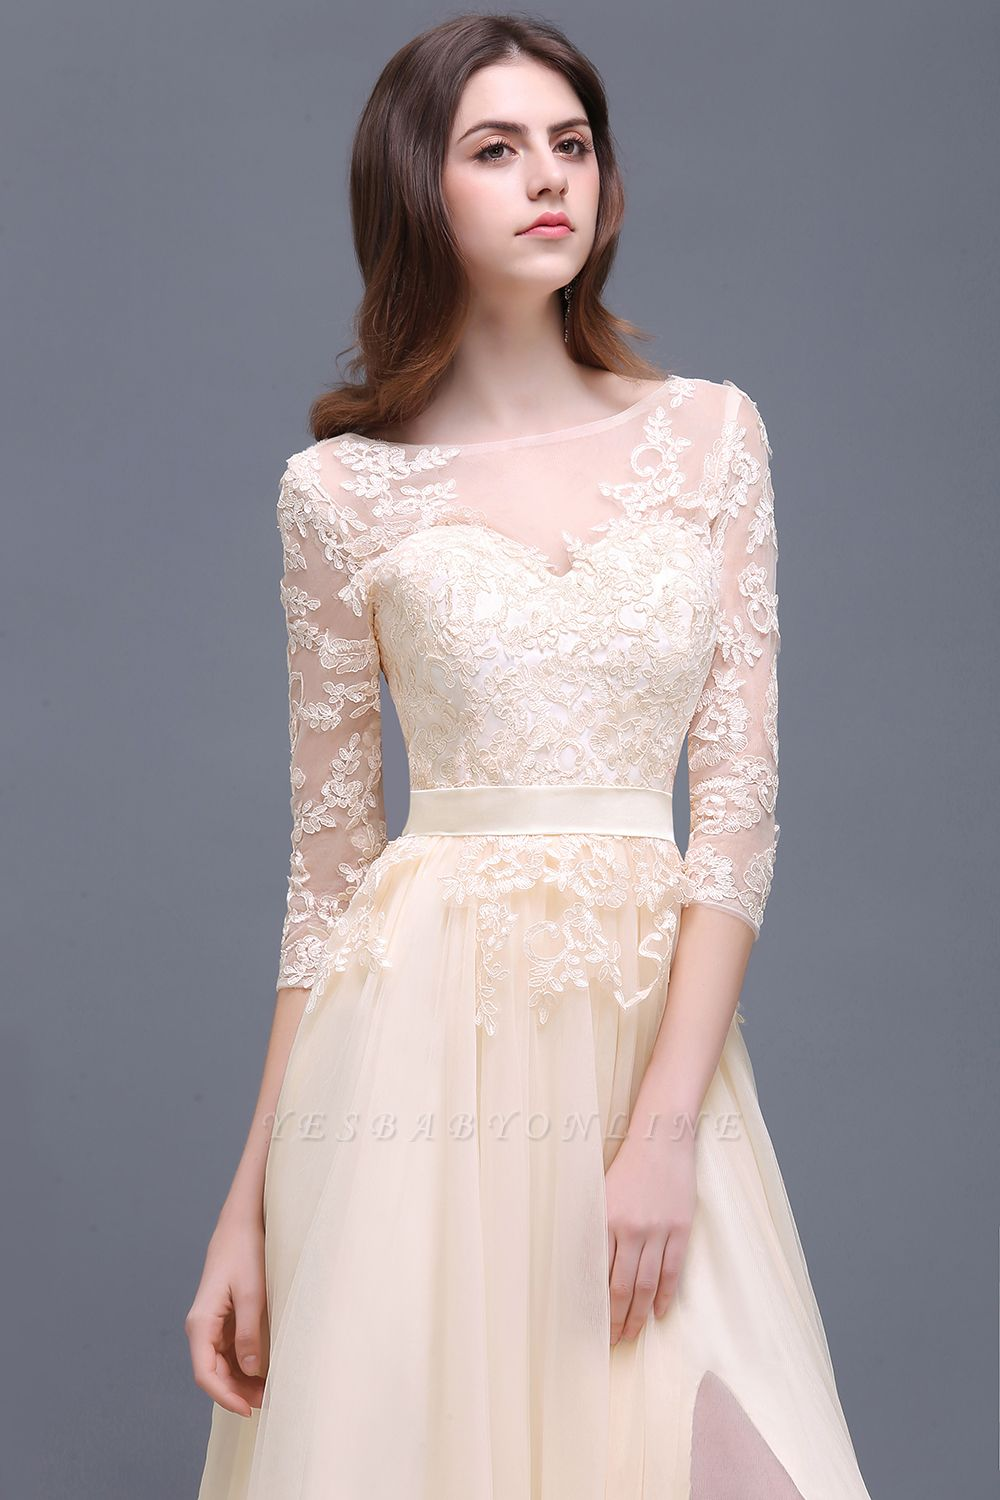 Champagne Scoop-Neckline Three-quarter-Sleeves Lace-Appliques Prom Dress